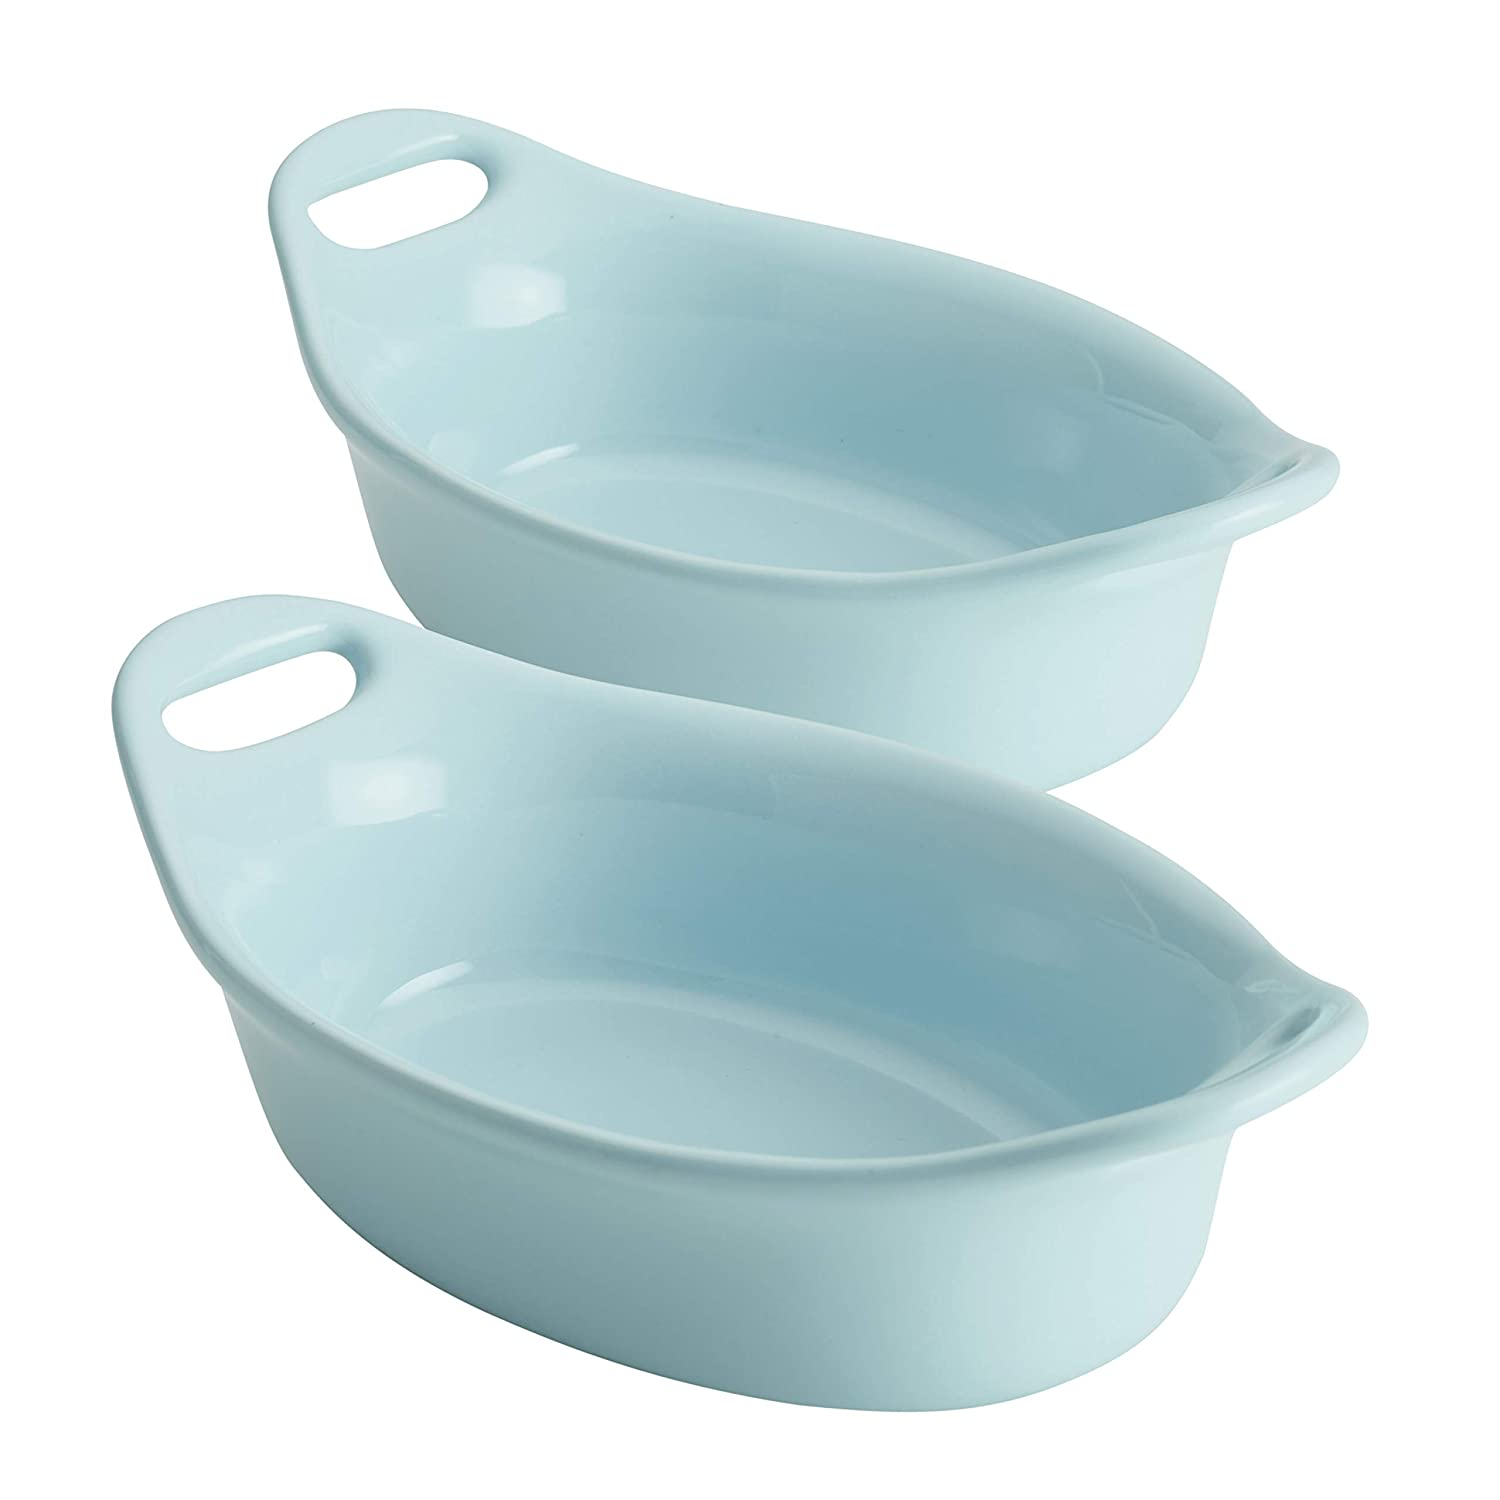 Rachael Ray 47854 2-Piece Stoneware Au Gratin Set, Light Blue